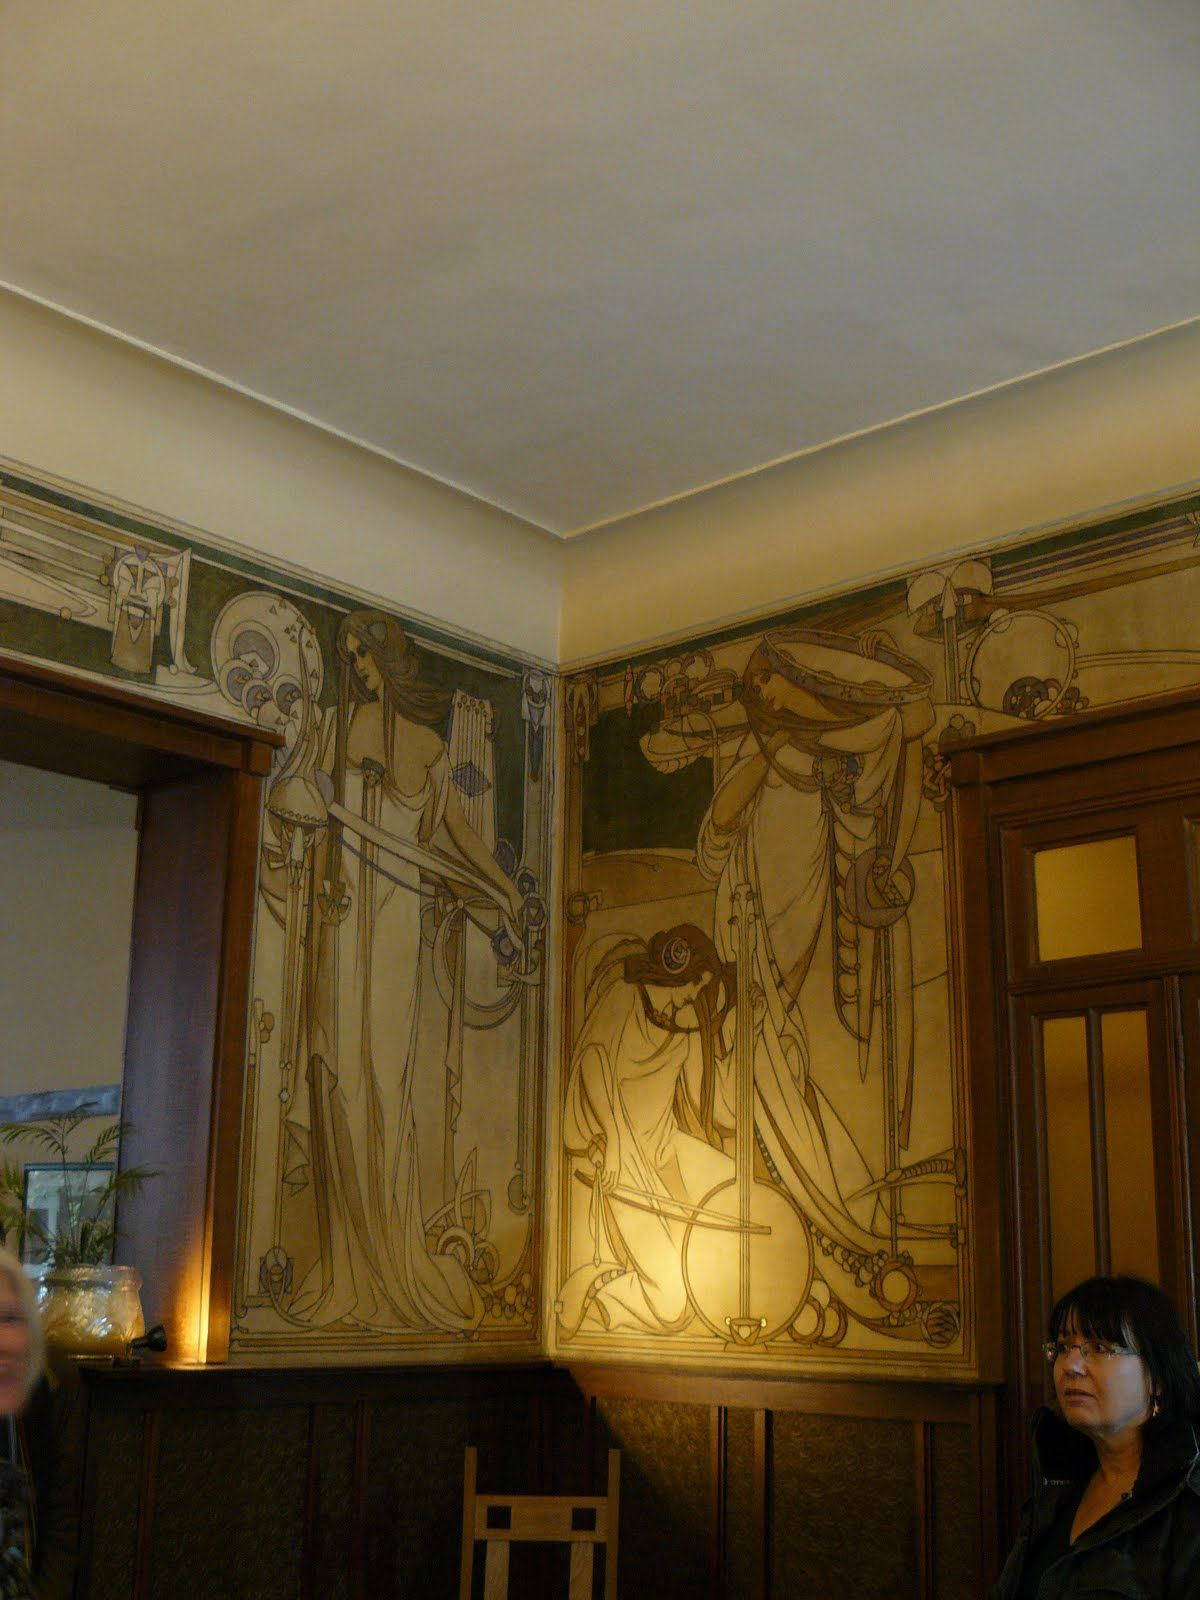 Amazing art nouveau wall mural needs elves and dragons and